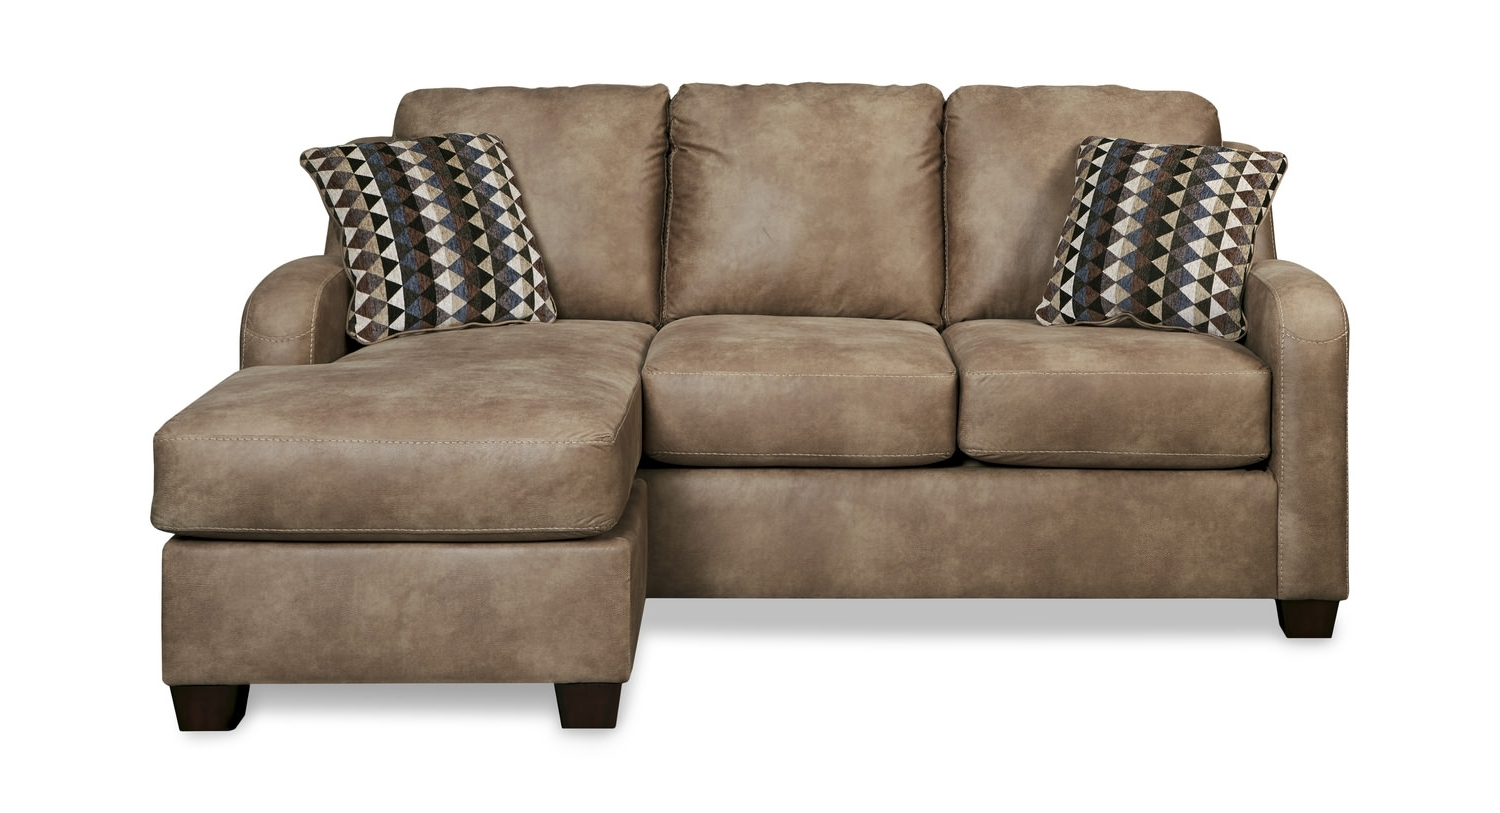 Sofas With Reversible Chaise Throughout Recent Dune Sofa With Reversible Chaise (View 9 of 15)